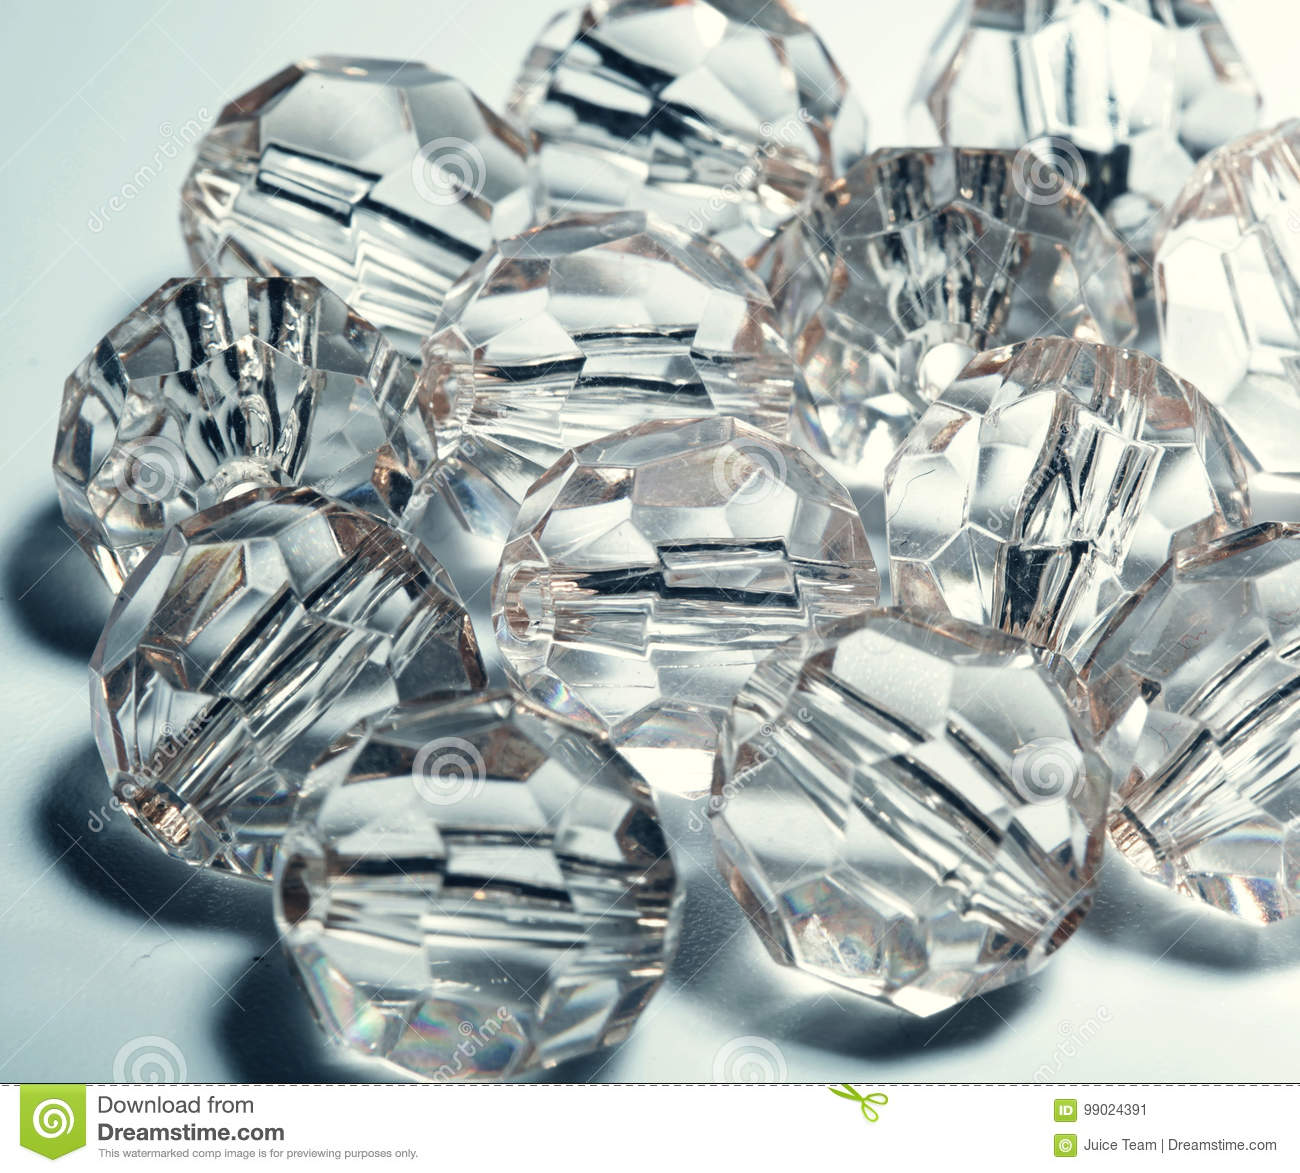 Accessories, small transparent crystals